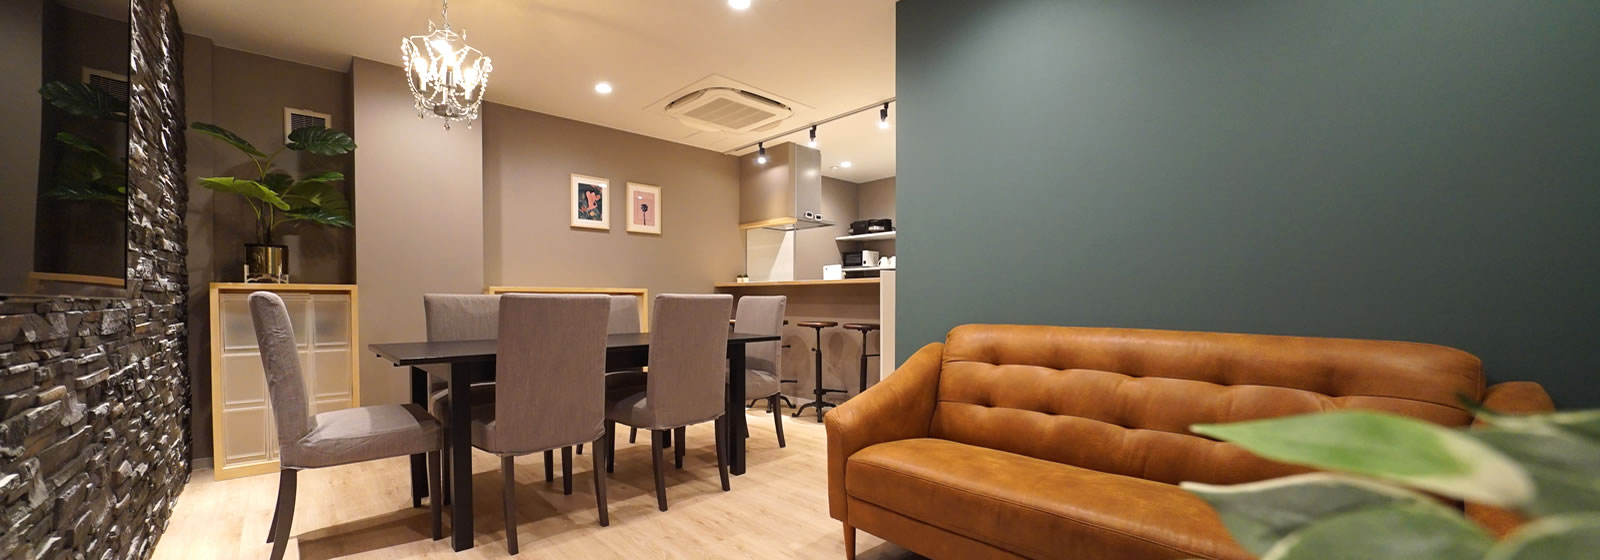 Couverture Ueno-matsugaya Male and female OK share house which opened in February 2019. FROM 42,000 yen